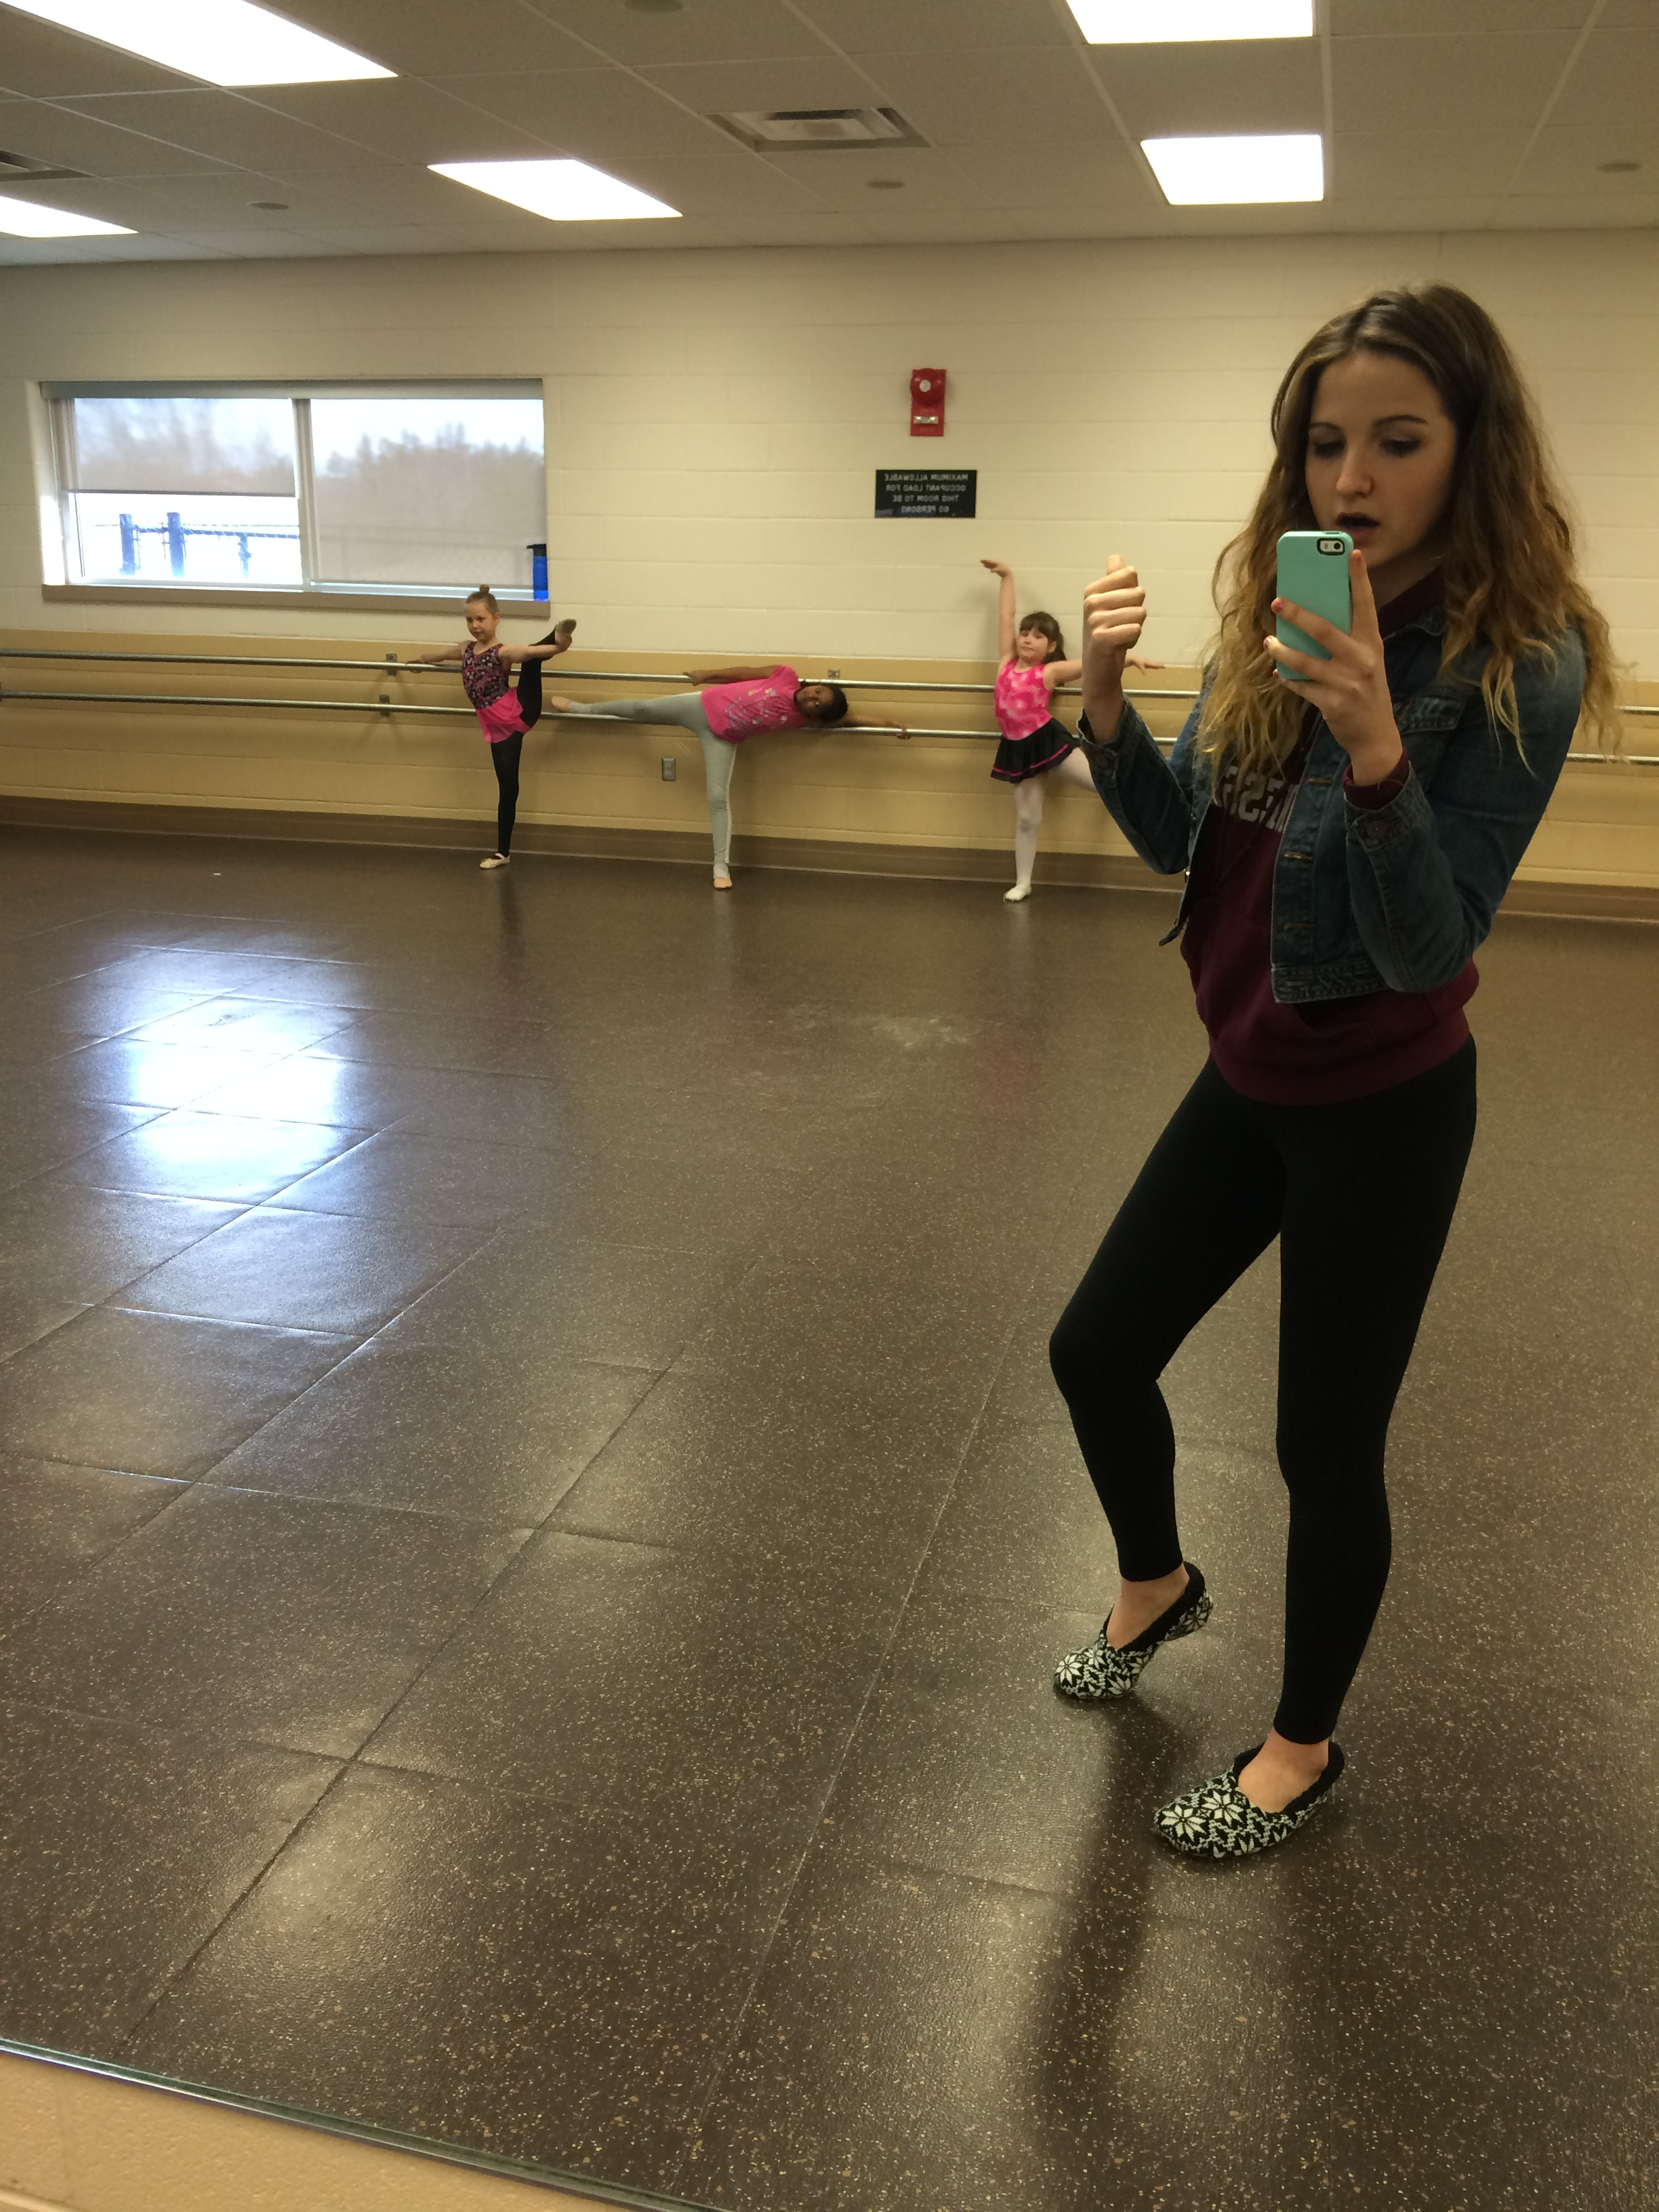 MOTIVATION MONDAY: Dance as Therapy